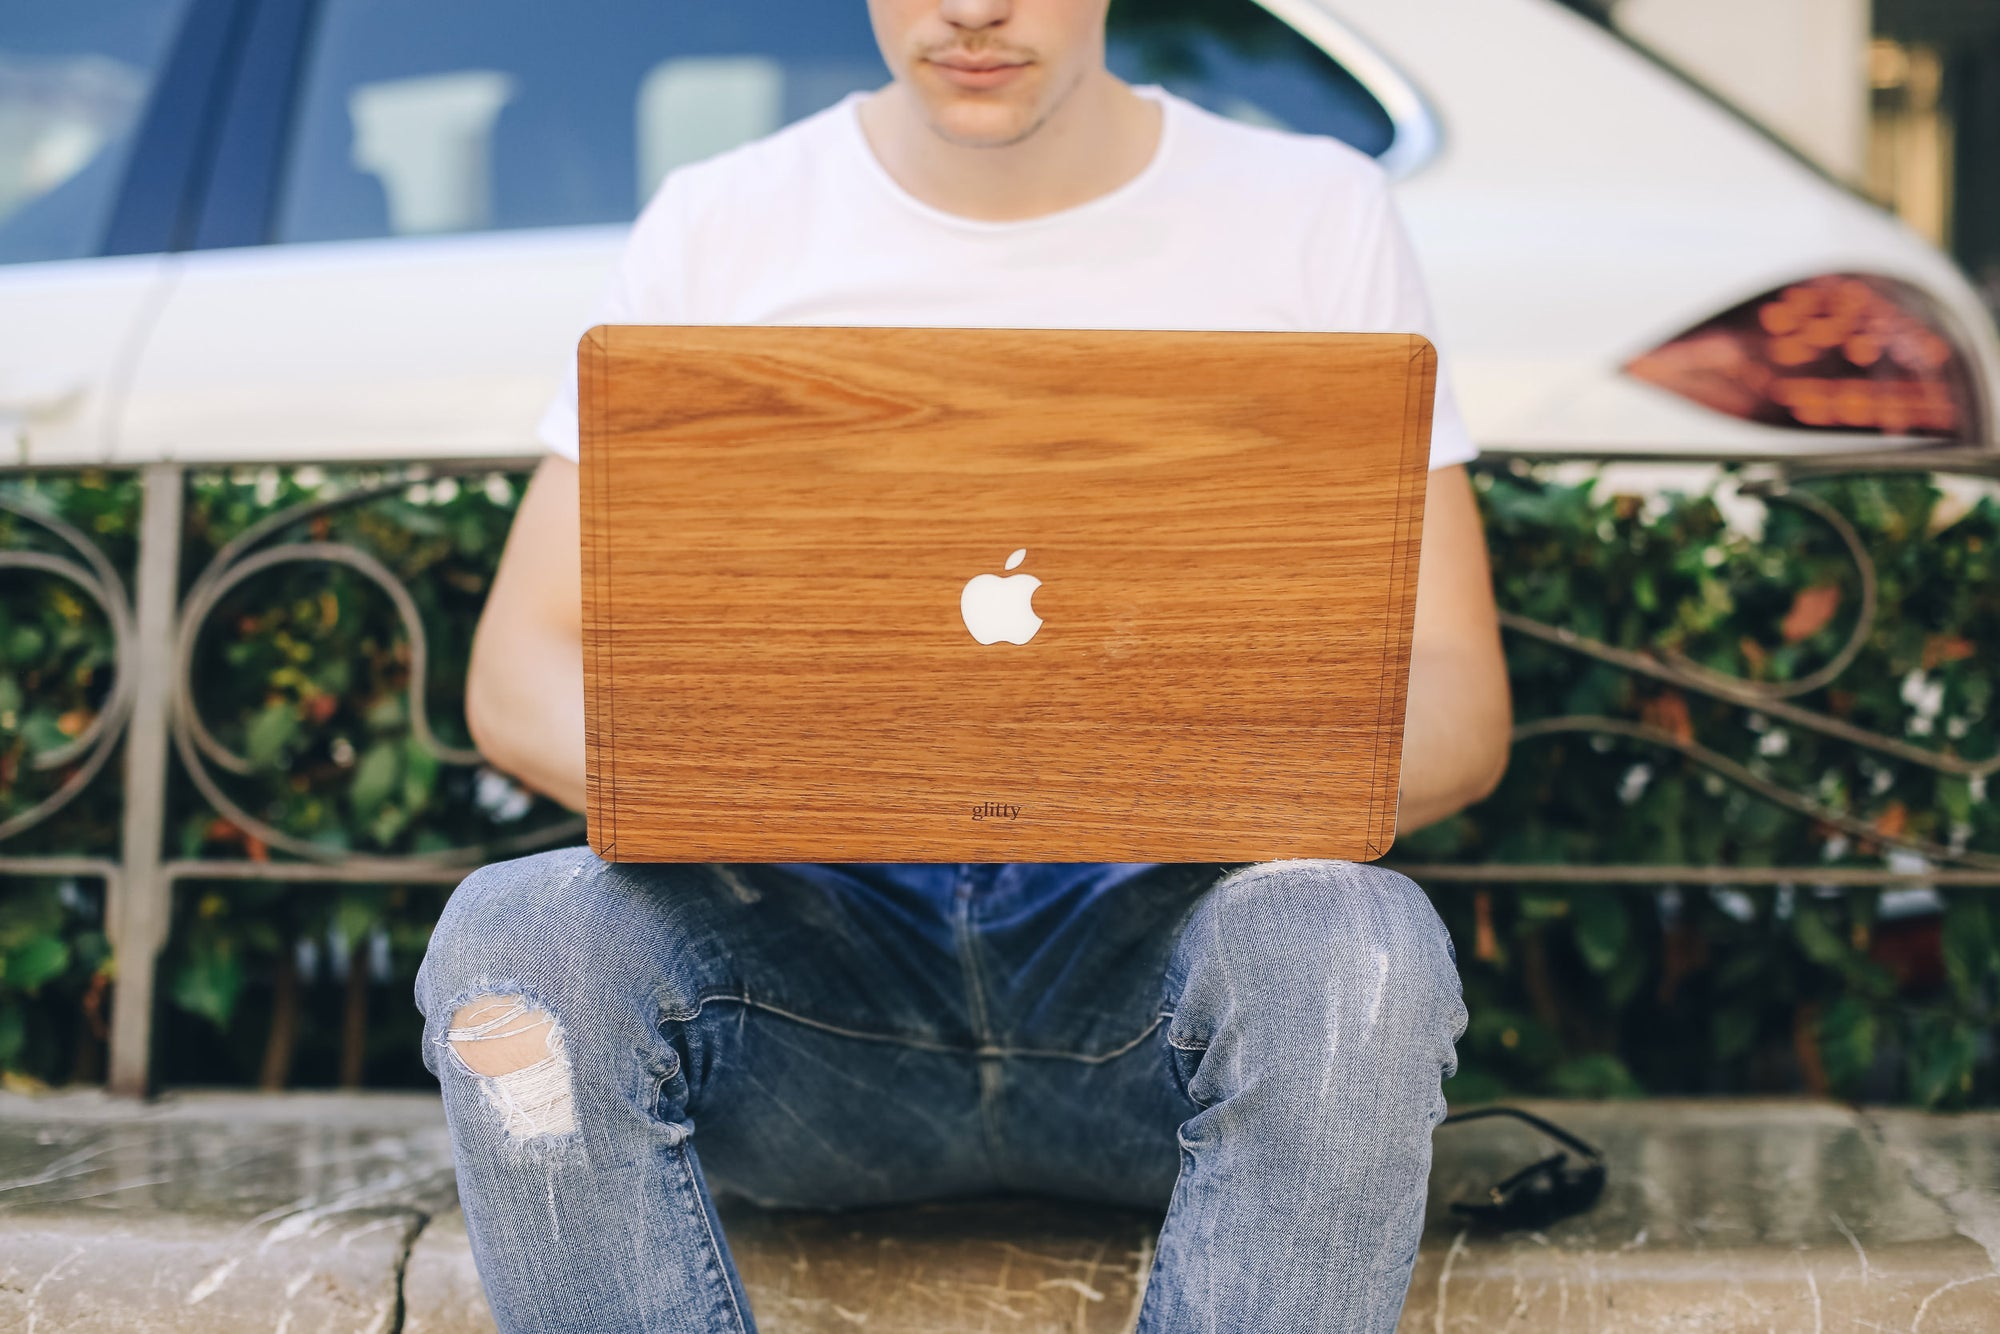 Guy with ripped jeans sitting on the sidewalk working on his MacBook with a Glitty Walnut cover